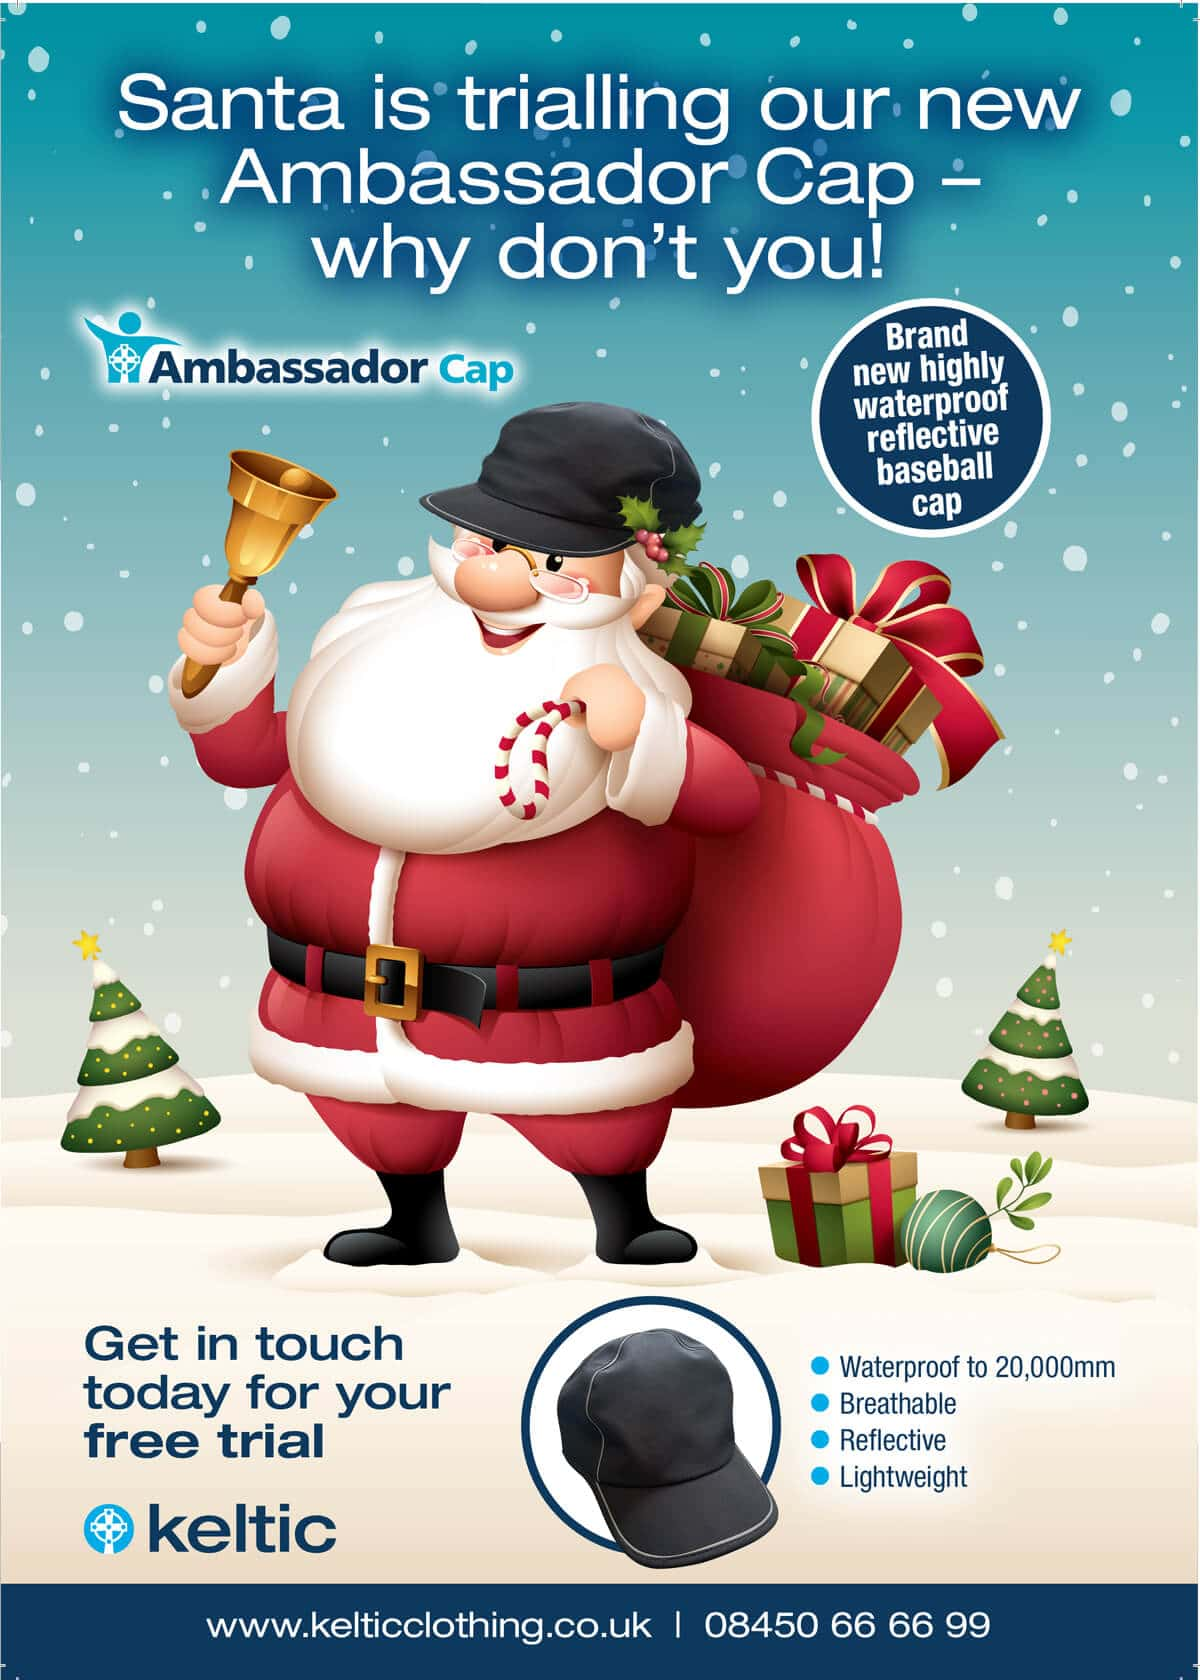 Santa is trialling our new Ambassador Cap - why don't you!